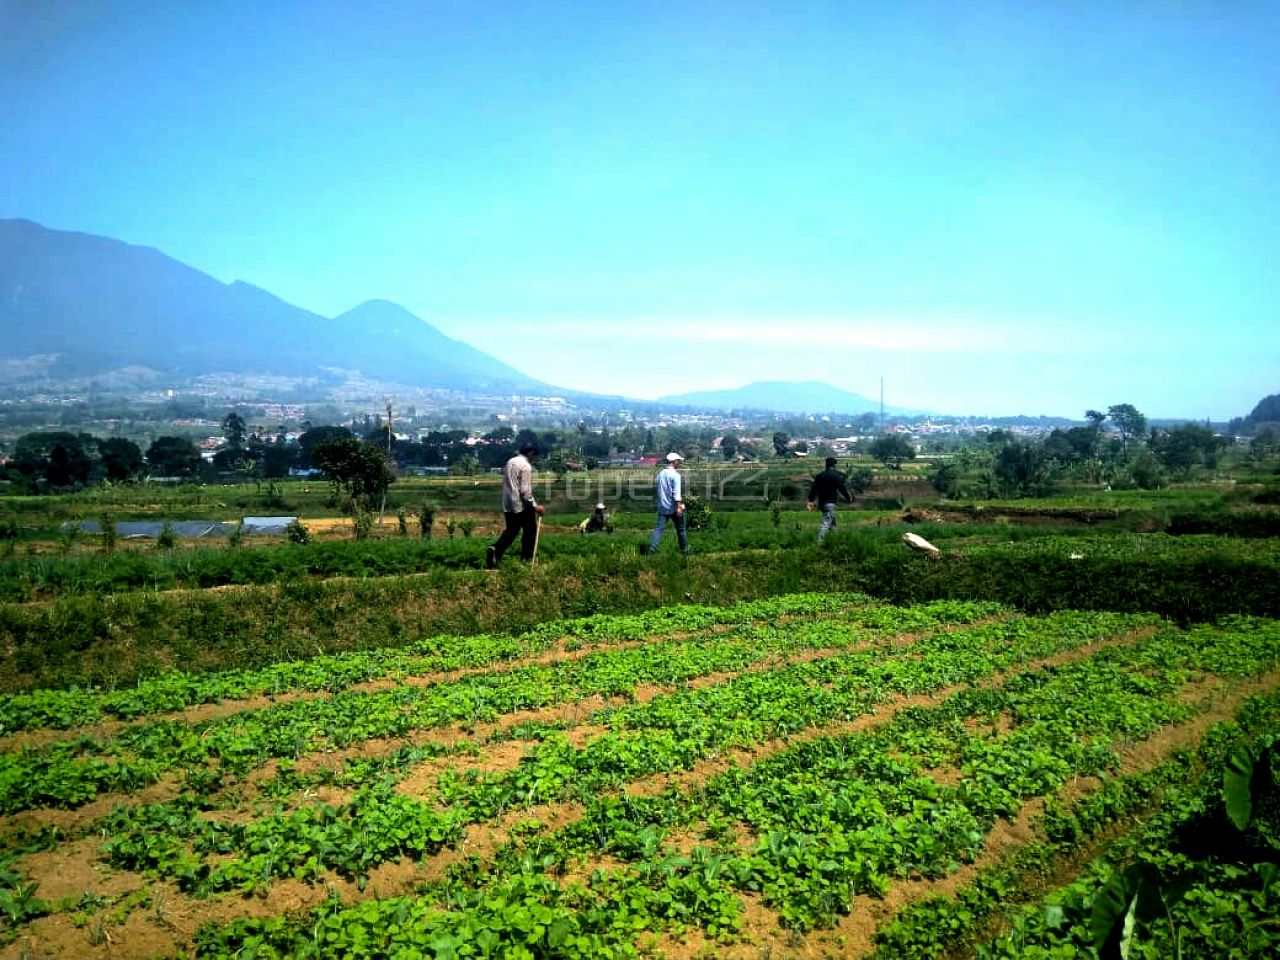 Land of Investment 30 Ha in Cianjur, West Java, Kab. Cianjur